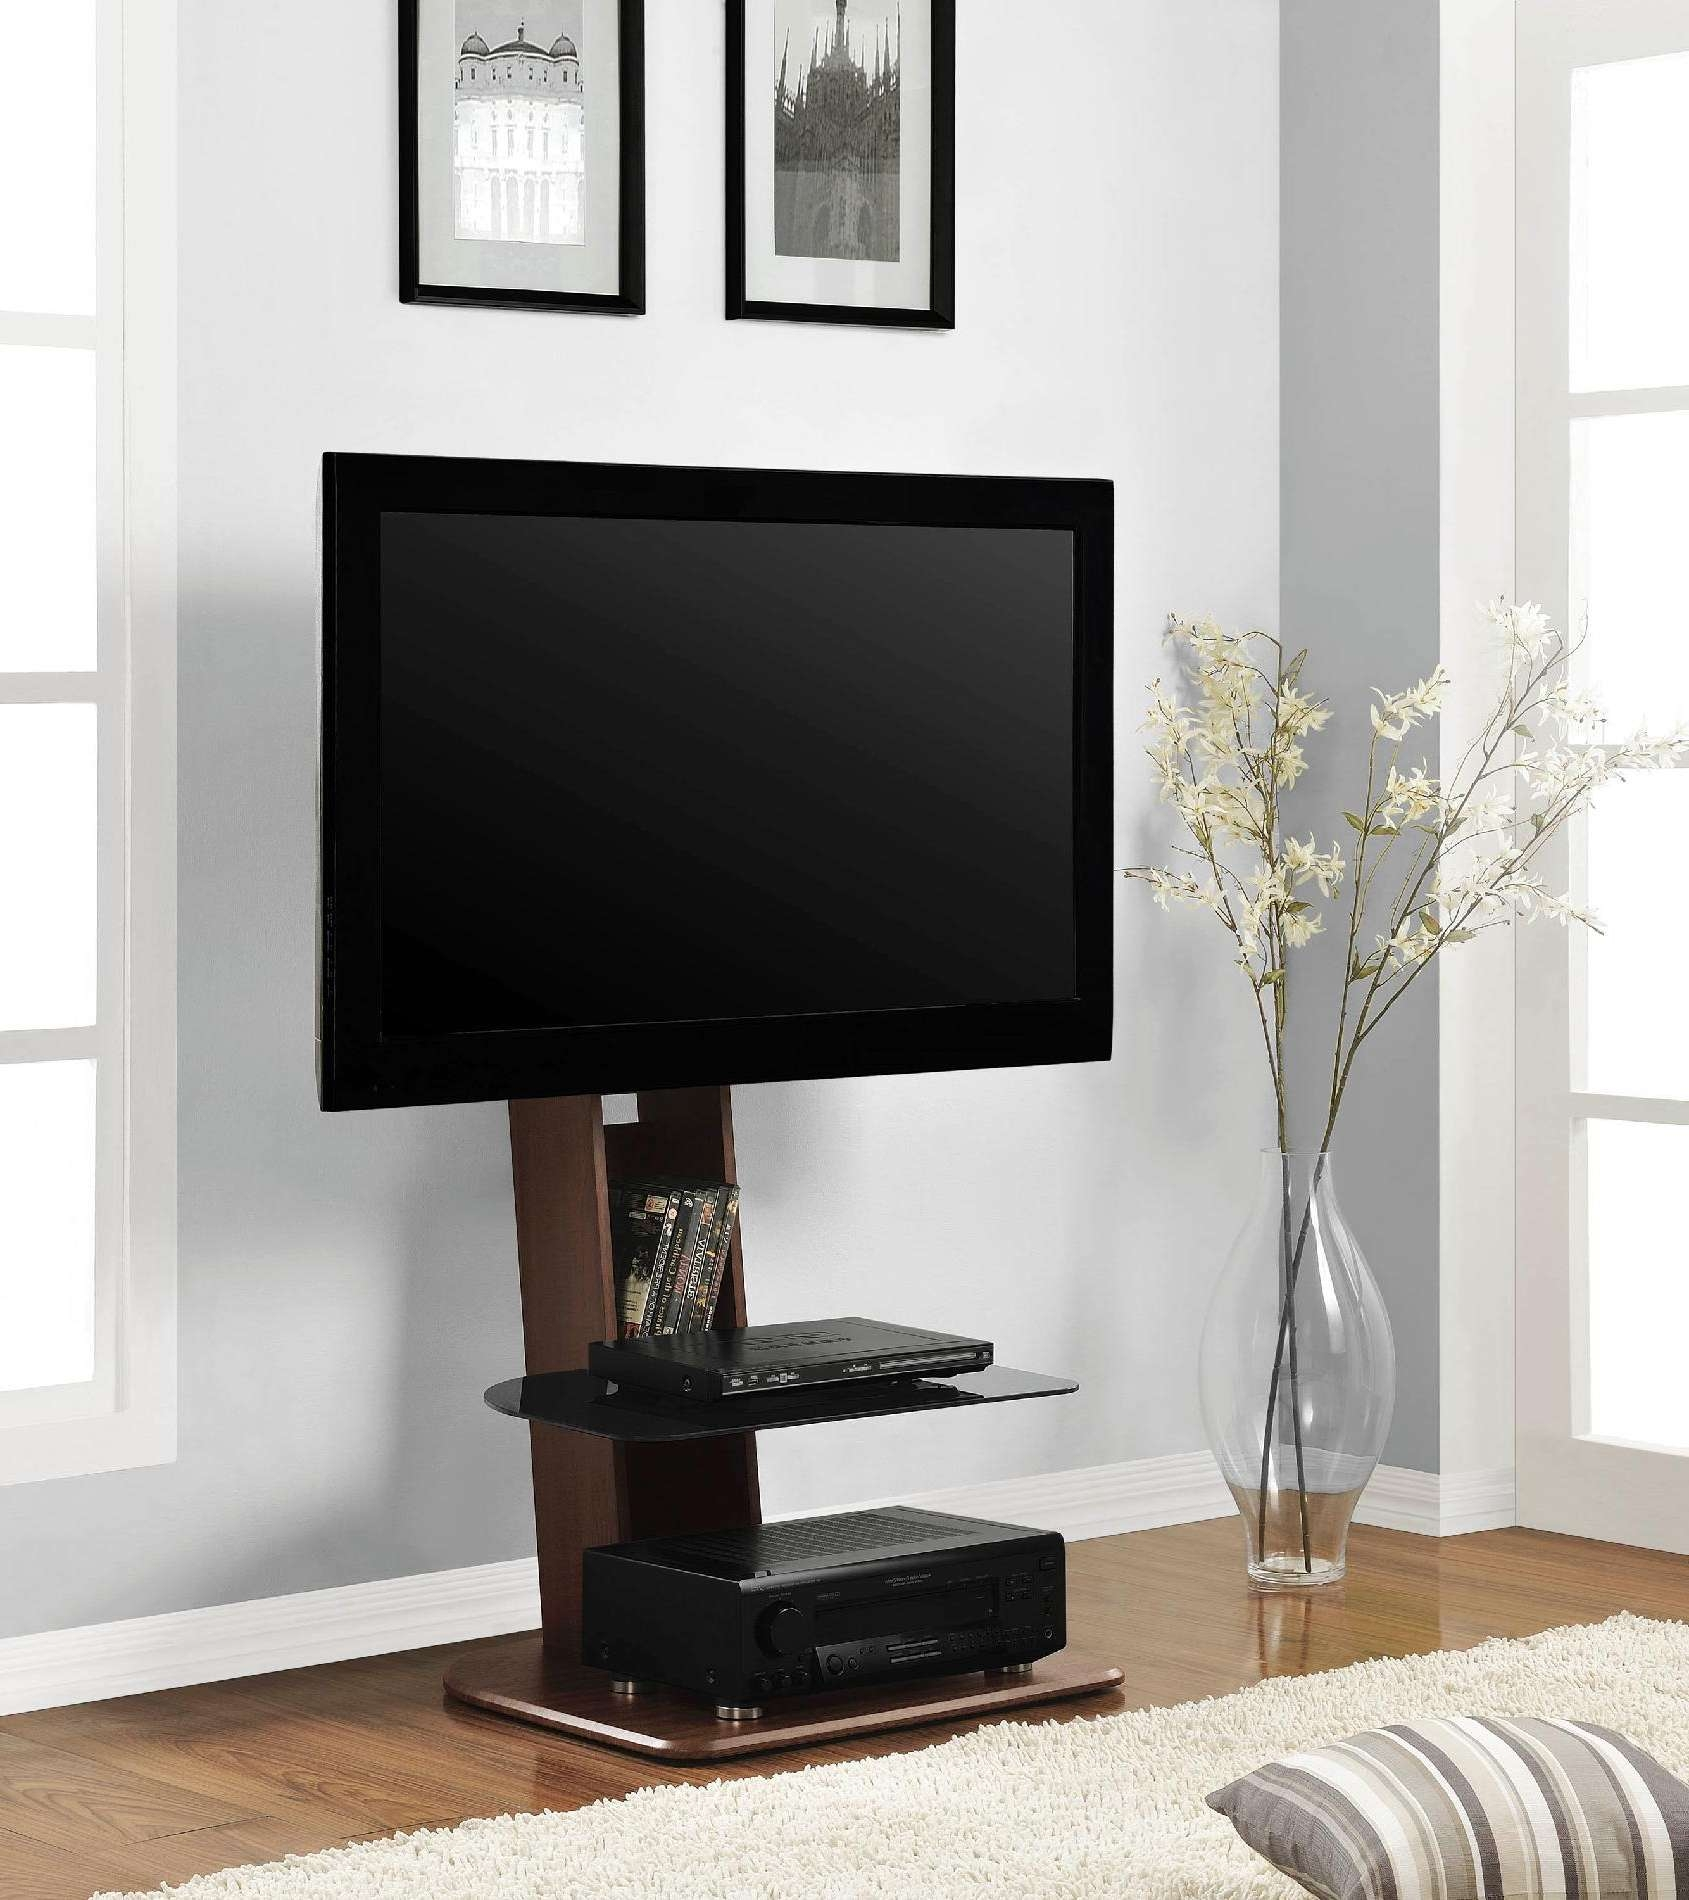 Grand Wood Tv Stands Then Flat Screens Tv Stands Along With Rack Intended For Tv Stands Swivel Mount (View 6 of 15)